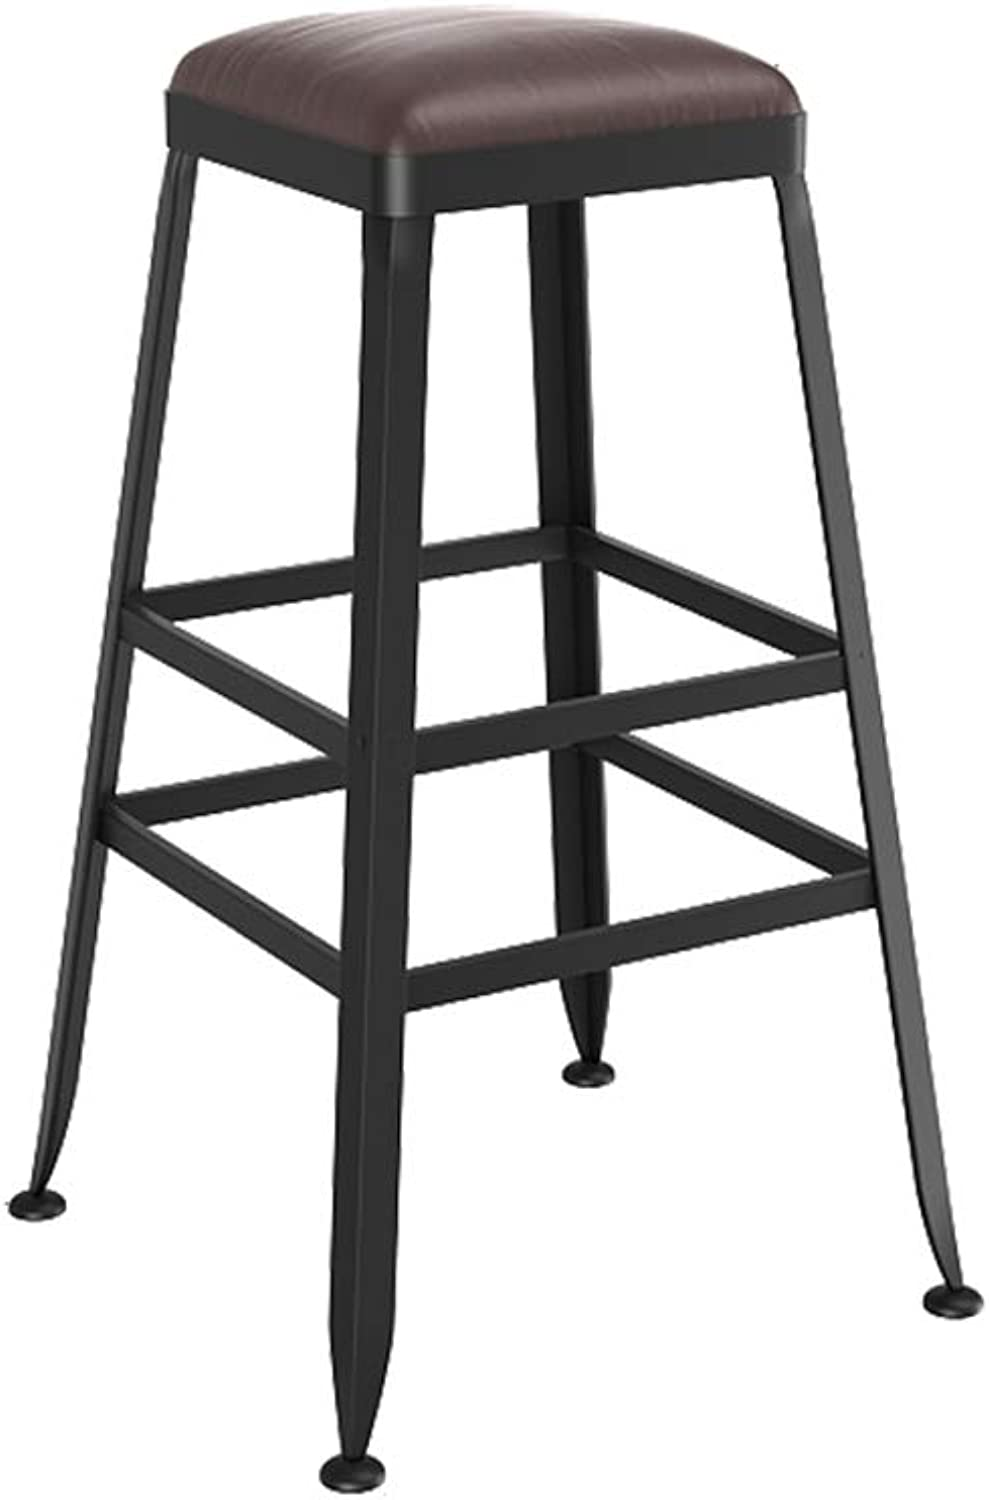 Qing MEI Solid Wood Bar Stool, Wrought Iron Bar Chair, Simple Chair, High Stool A++ (Size   80 cm)